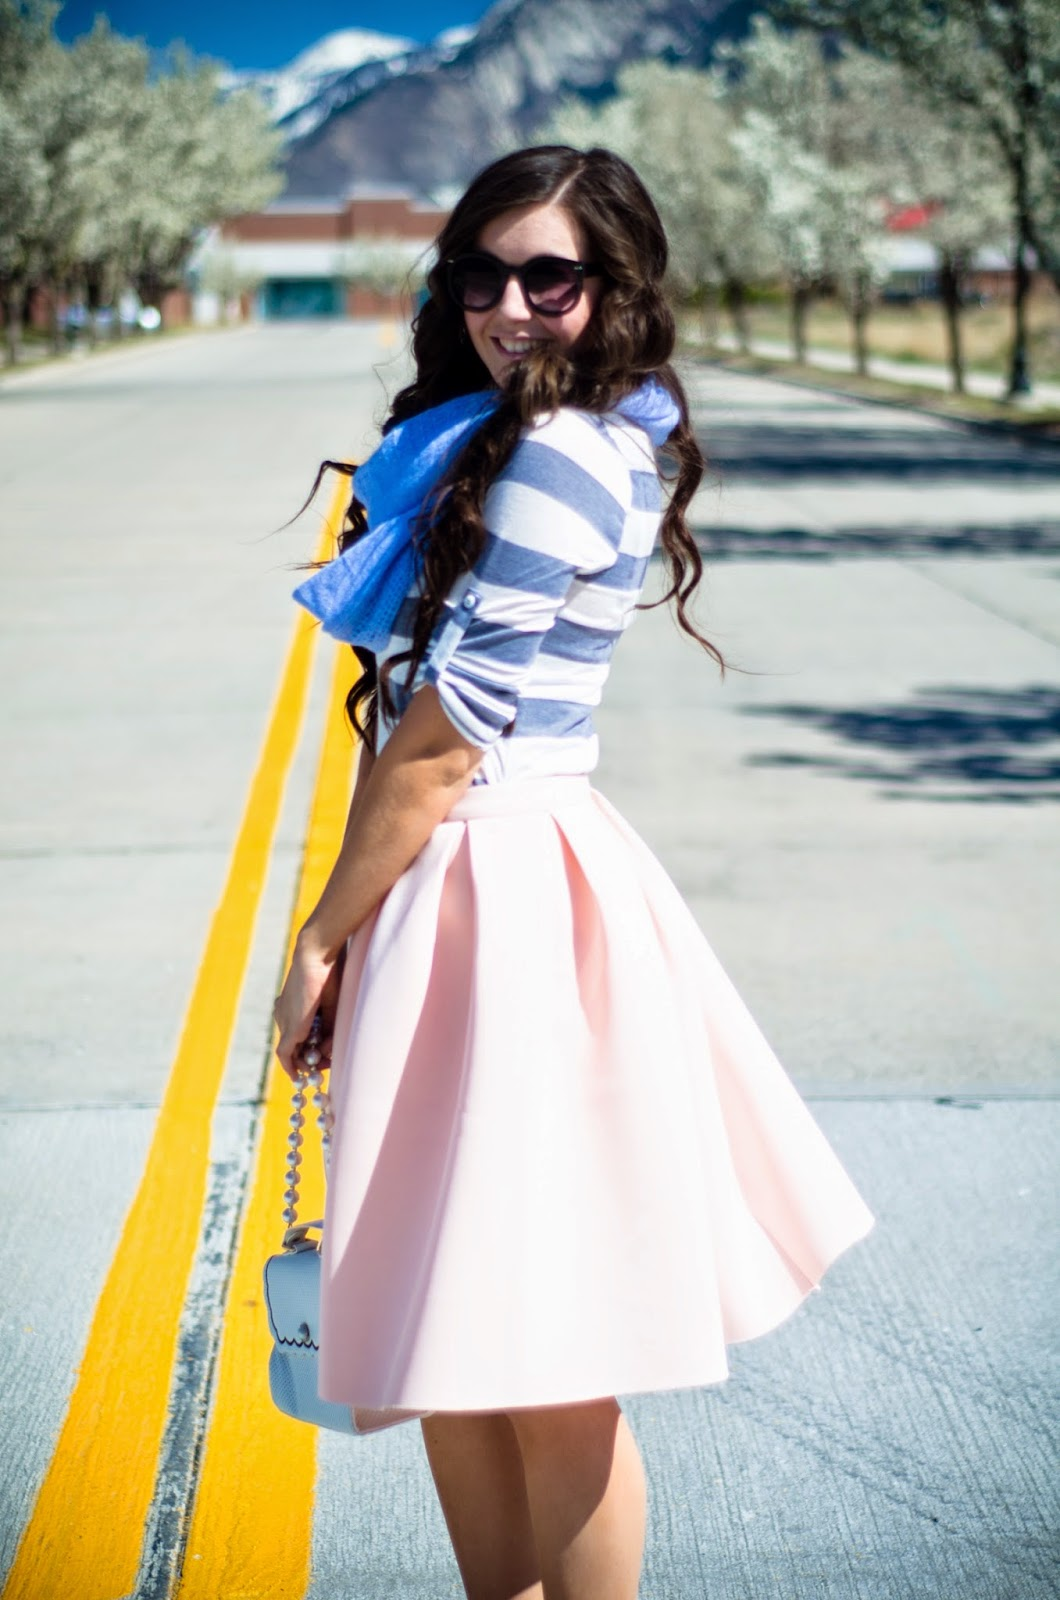 a line skirt, girly chic, girly outfit, how to wear a girly outfit, pink a line skirt, pink a lined skirt, how to be super girly, grey and pink flares, pink a line skirt,